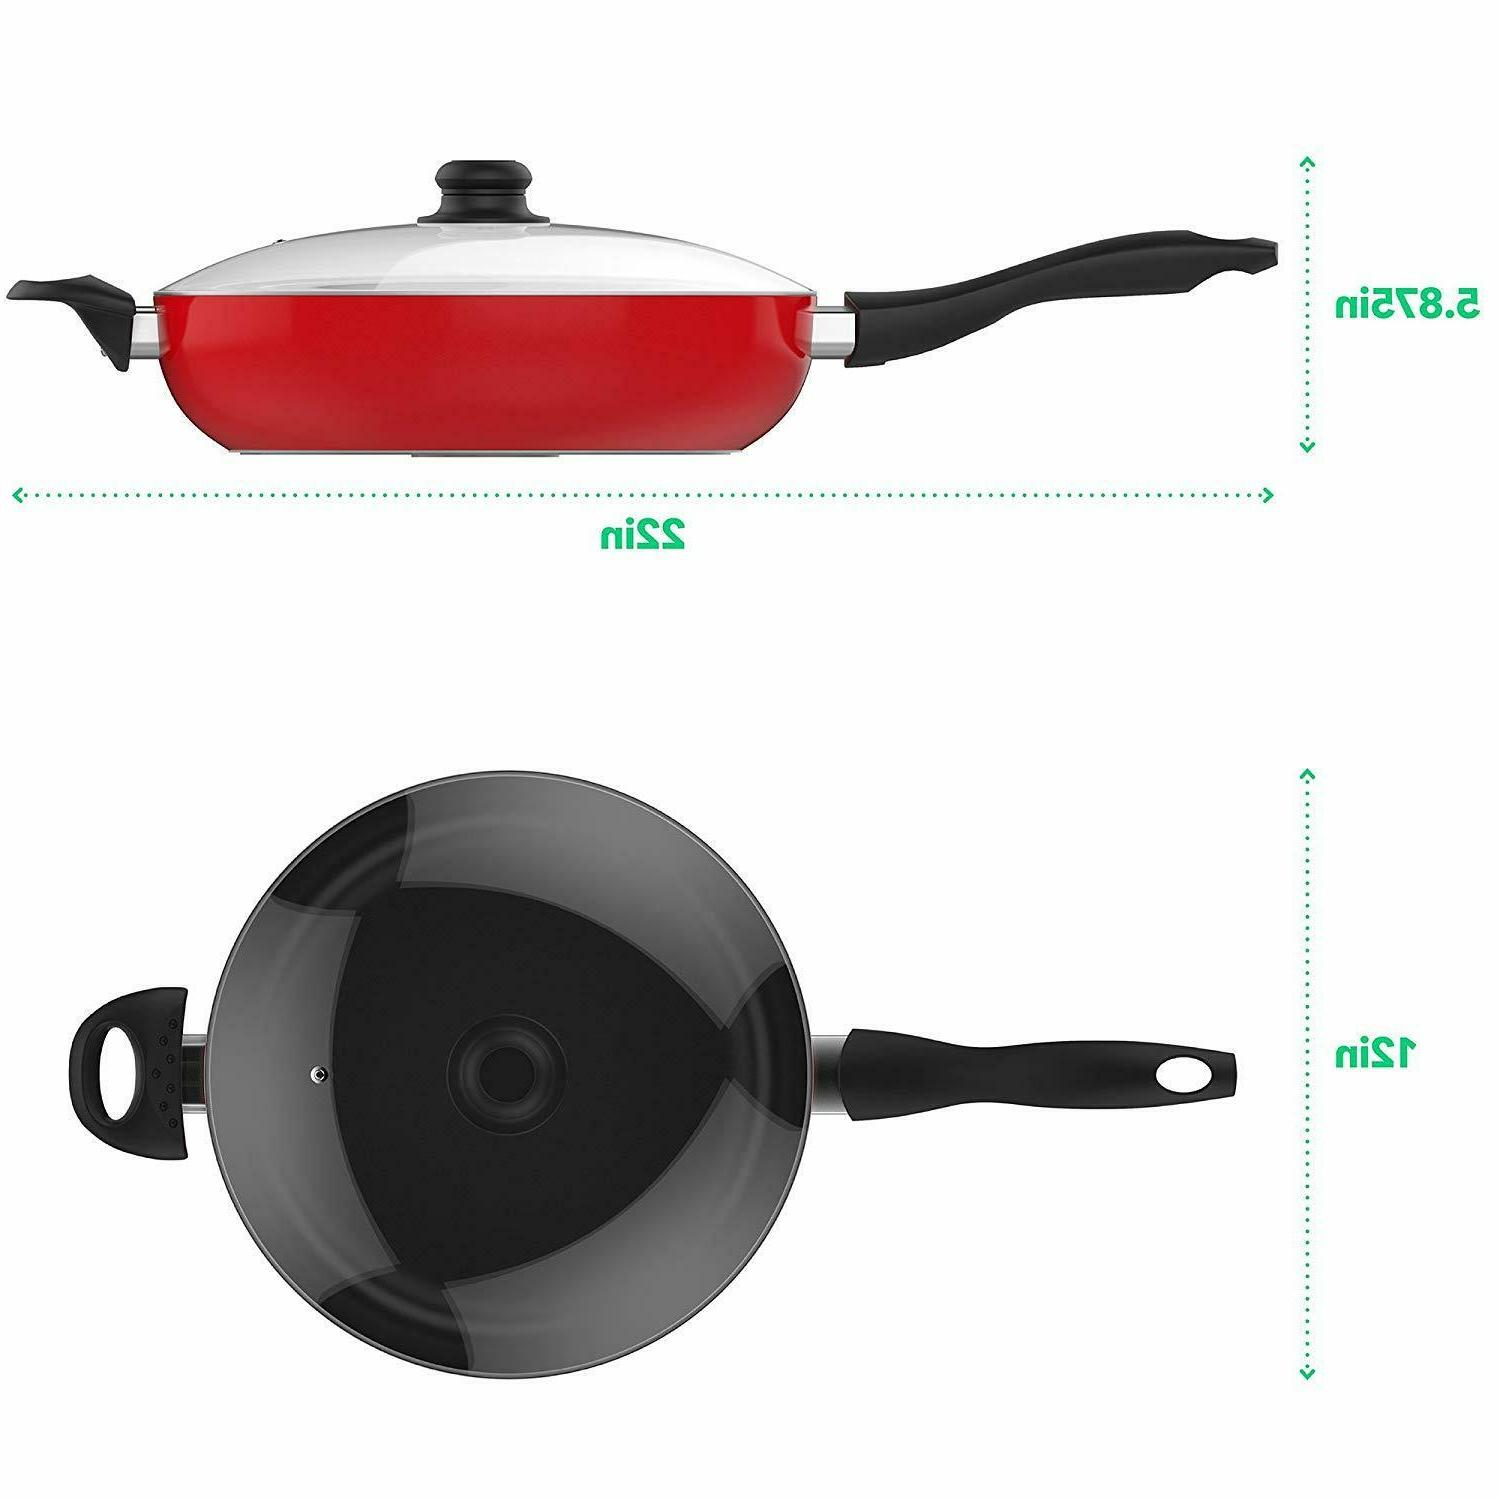 Vremi Saute 5 Quart Capacity Non and Frying